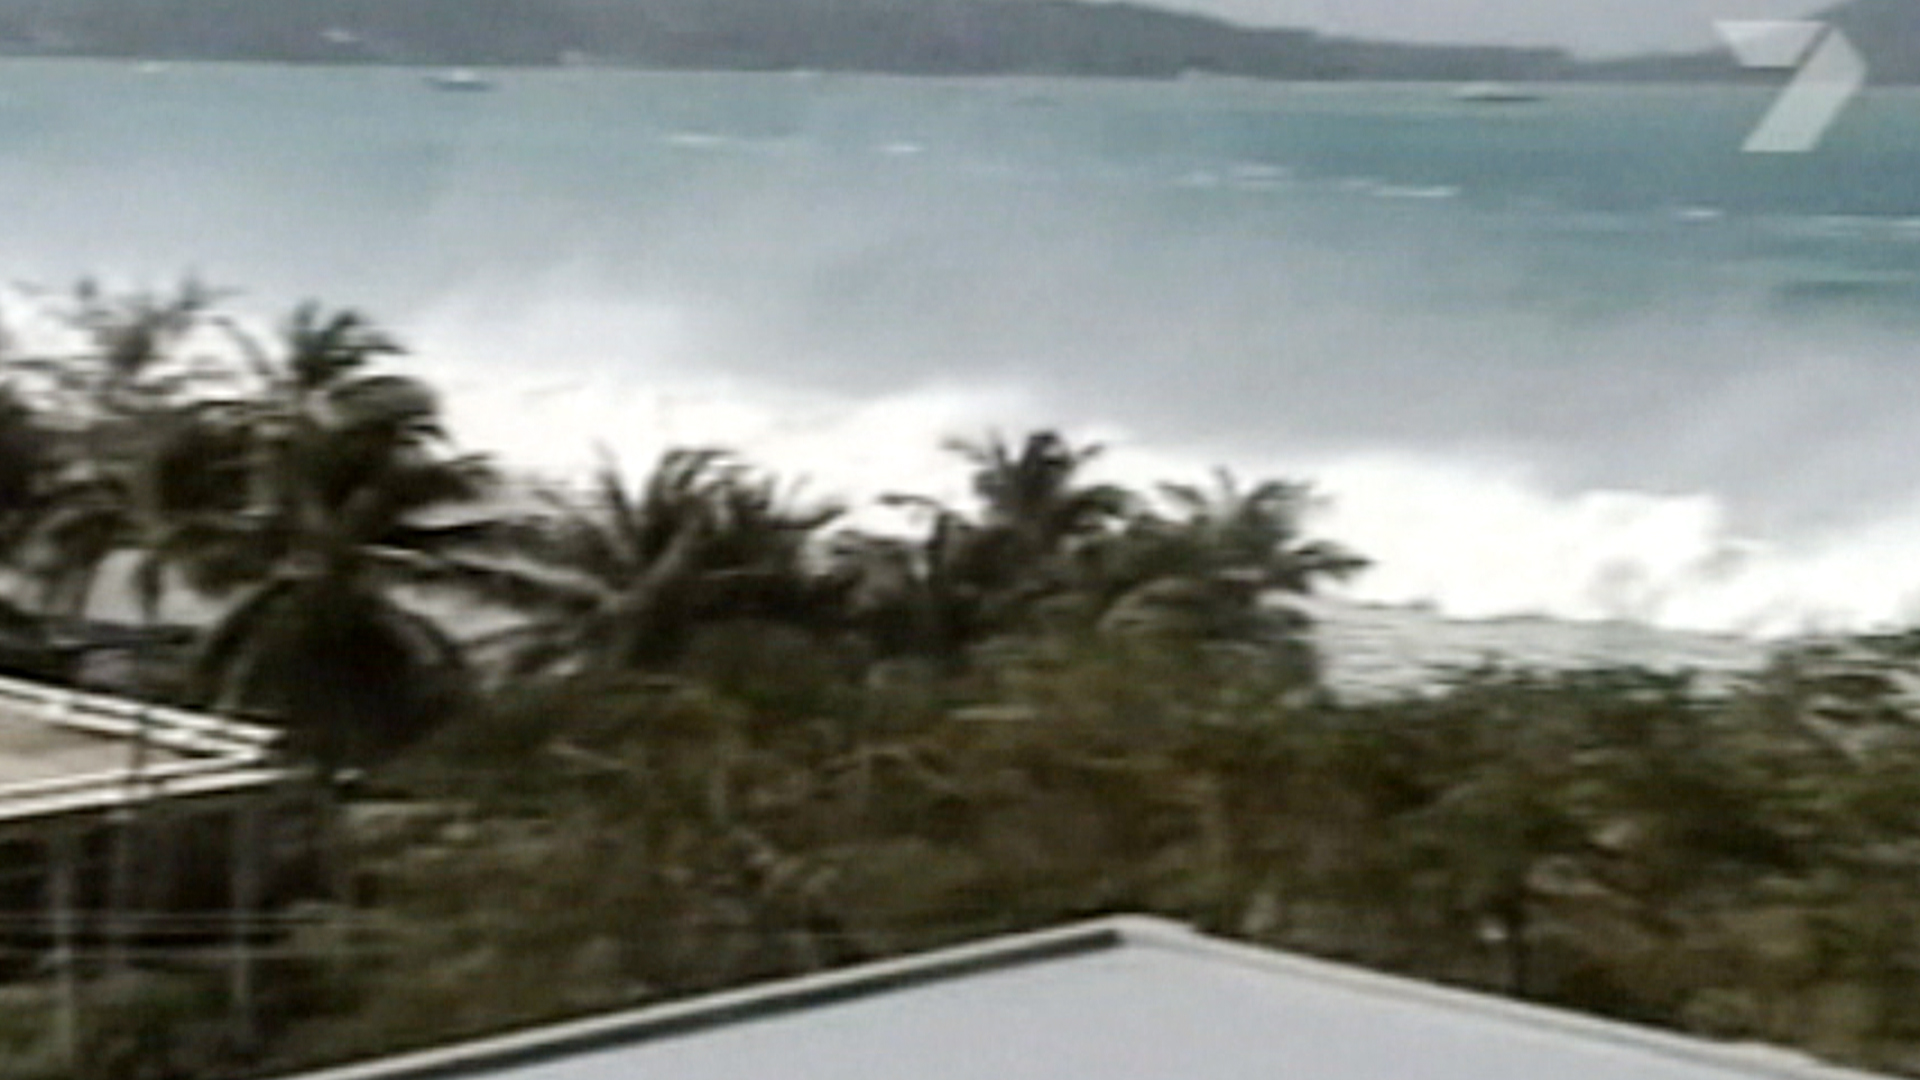 an analysis of tsunami in south east asia Latest news and information from the world bank and its development work in south asia access south asia's economy facts, statistics, project information, development research from experts.